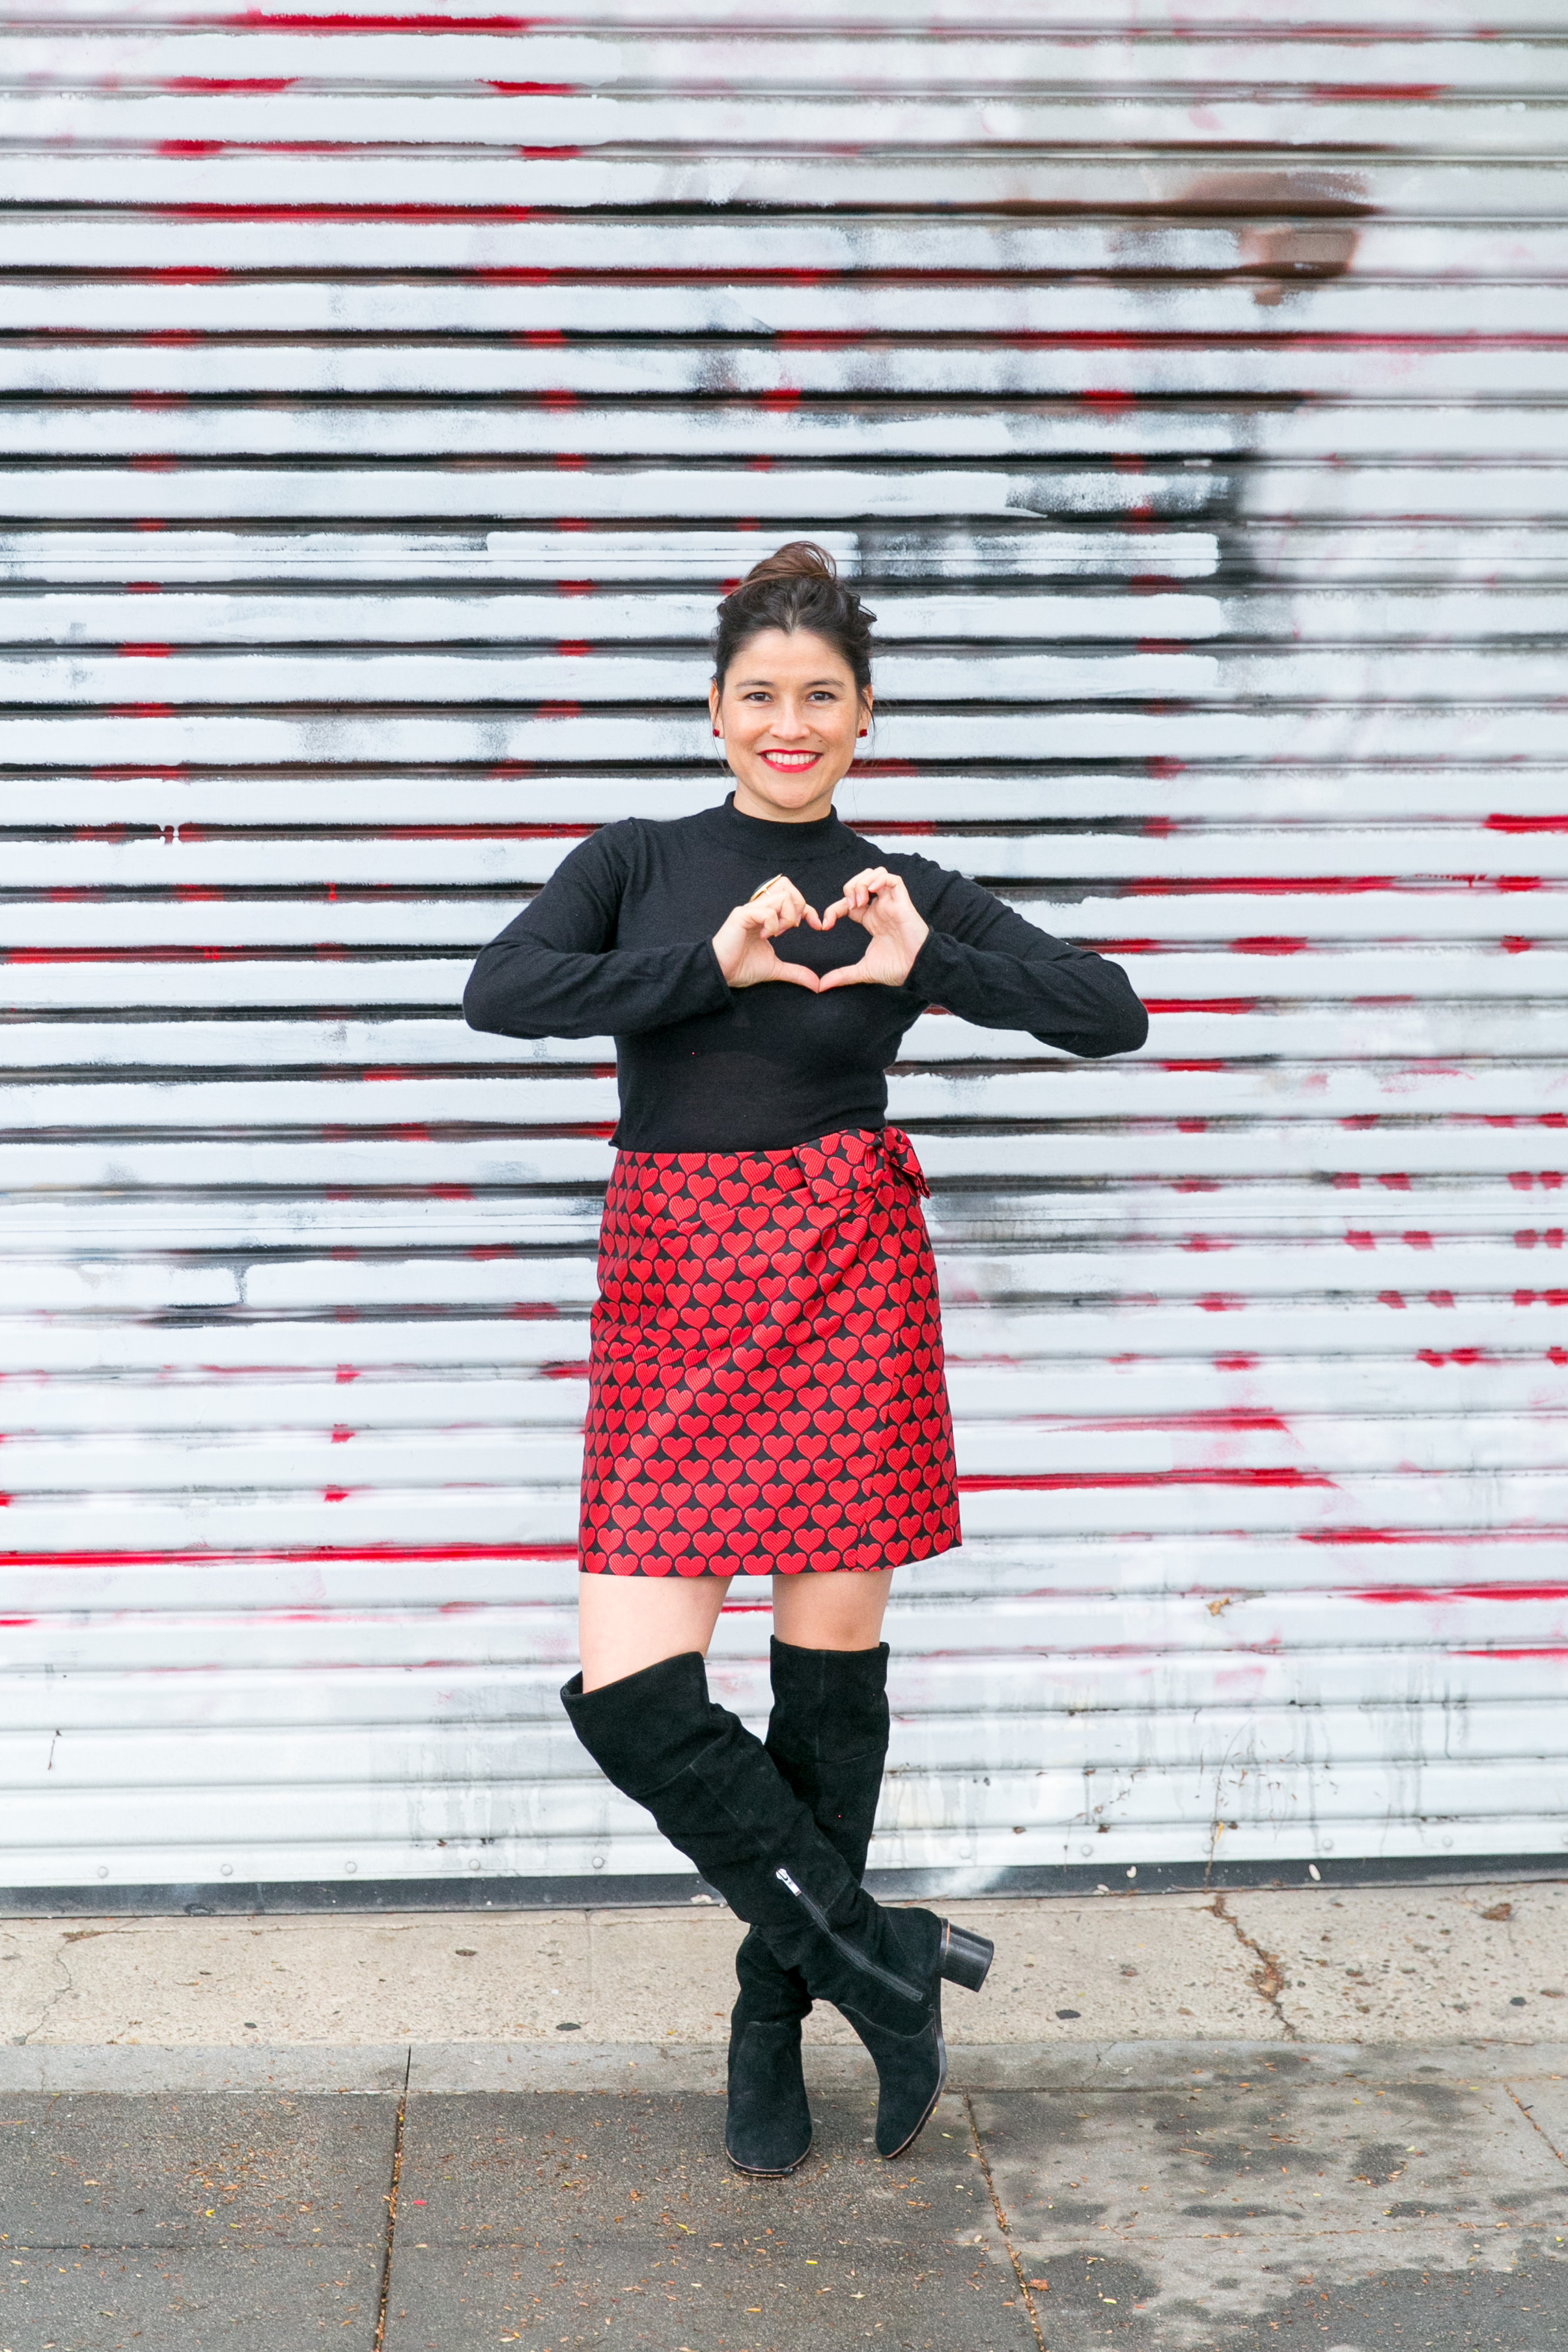 Valentineu0027s Day Outfit Idea: Heart Printed Skirt